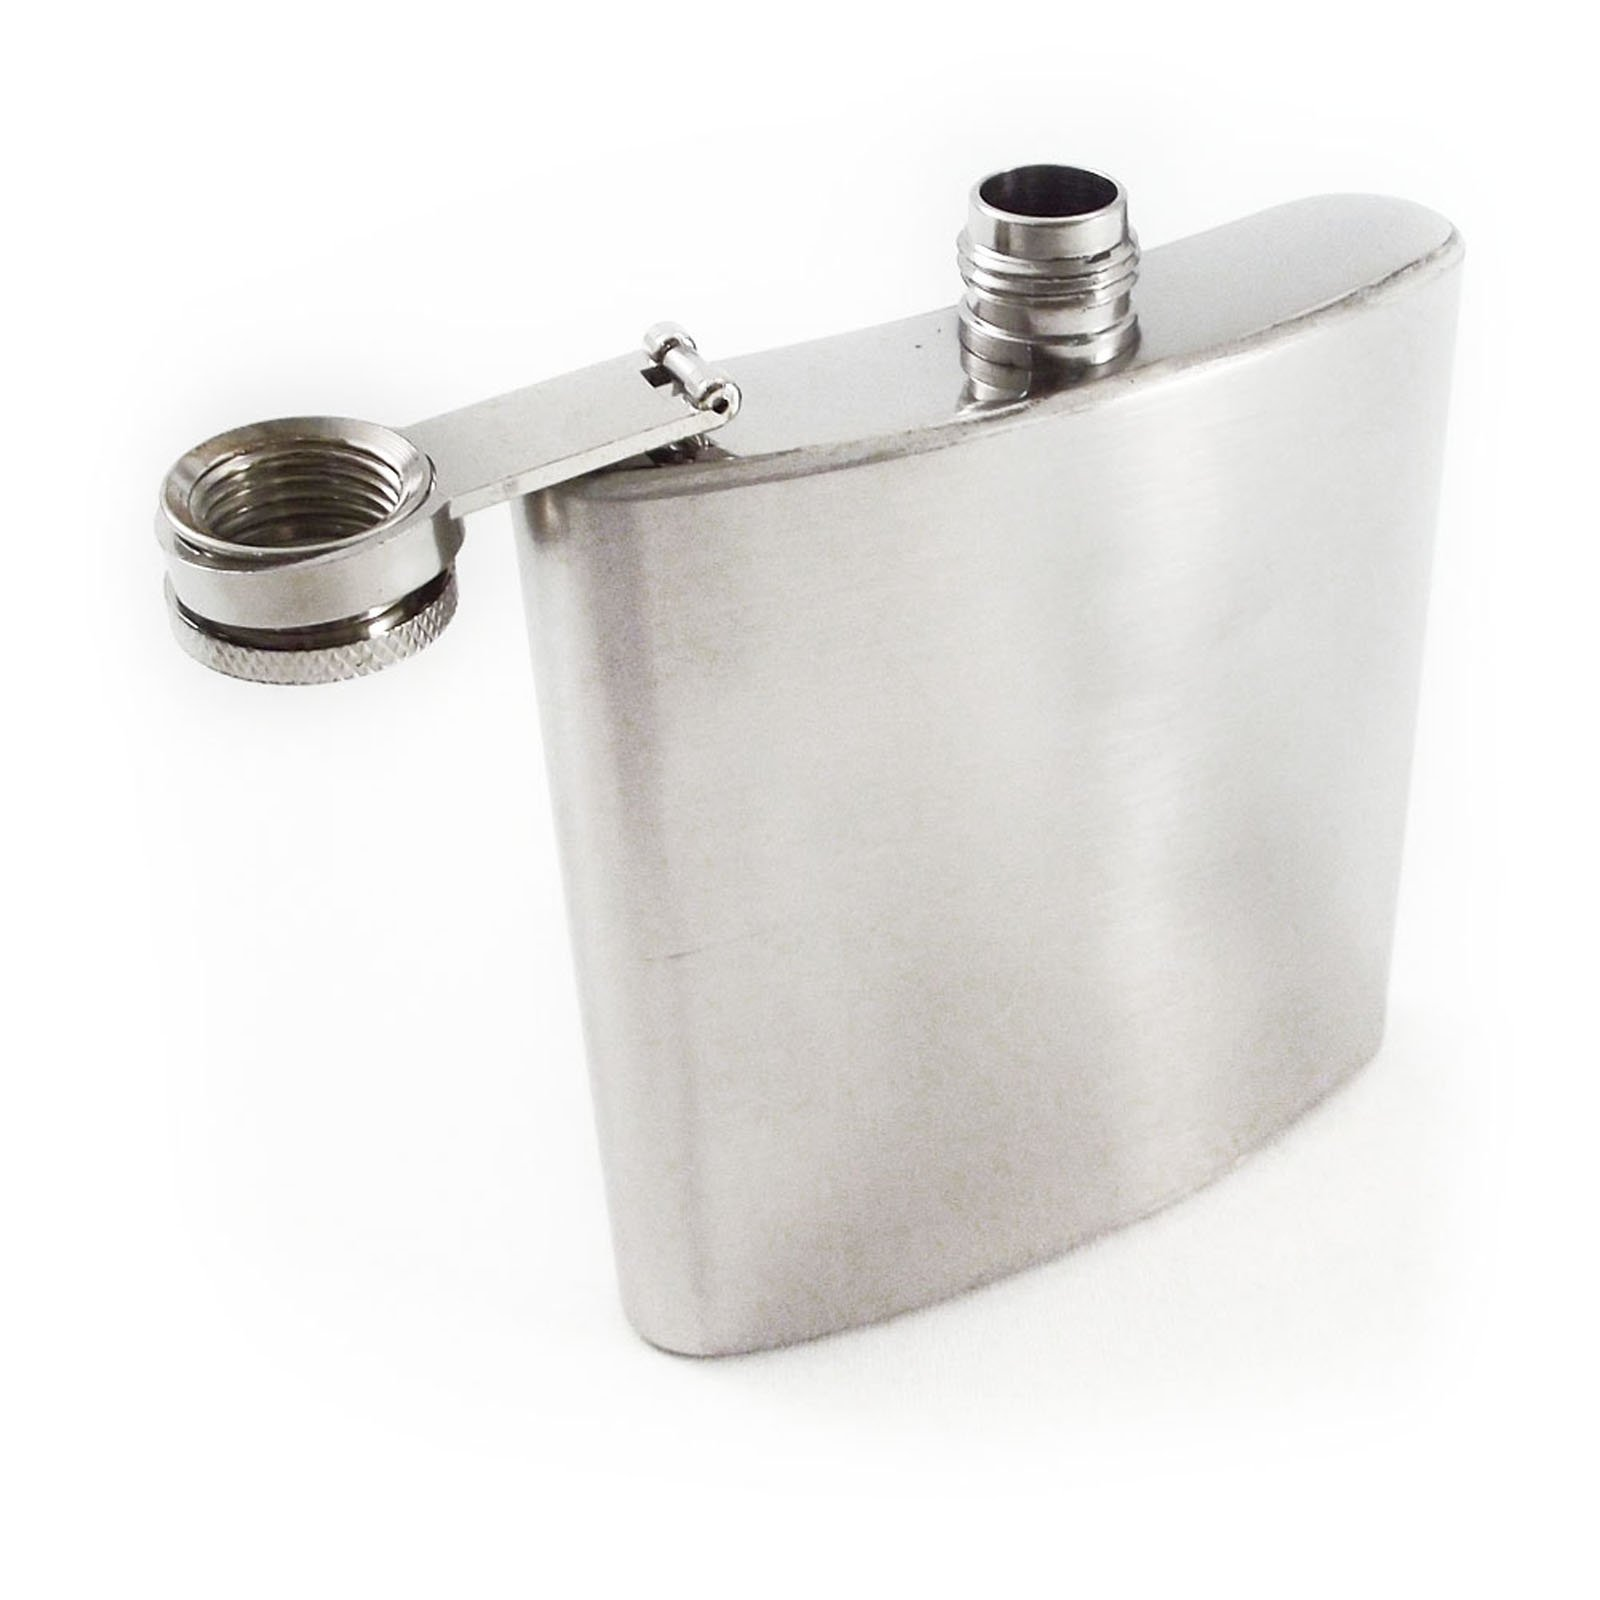 8oz Chrome Stainless Steel Portable Hip Flask